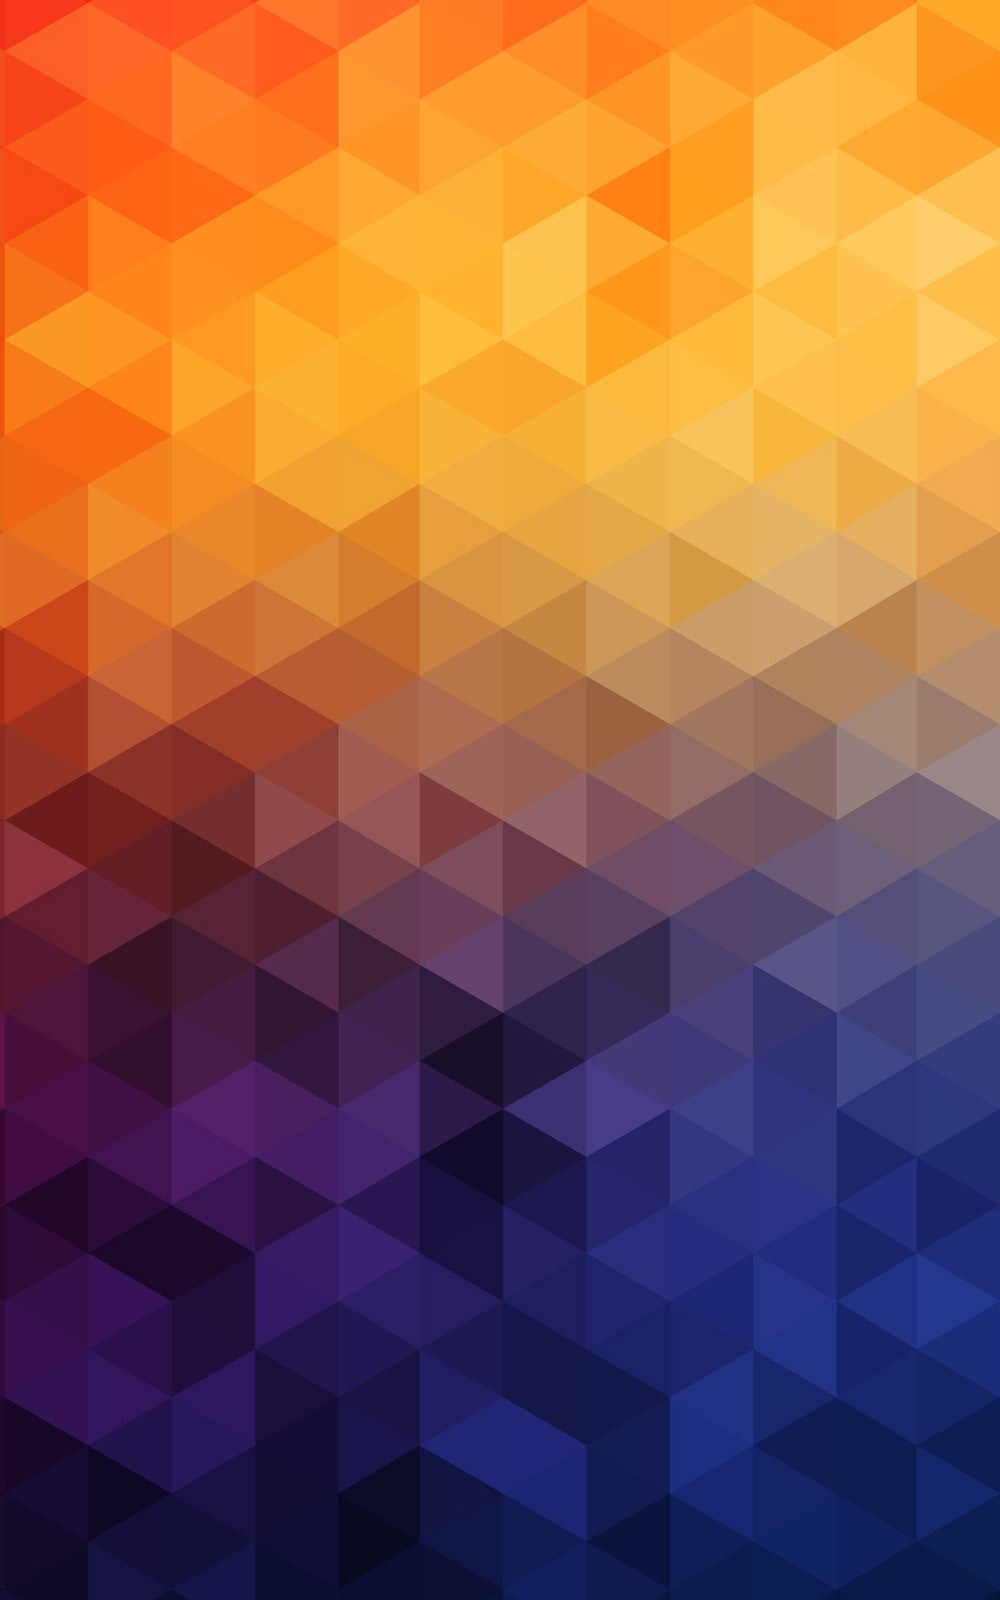 Hd Abstract Wallpaper Mobile Phone Wallpapers Abstract Wallpaper